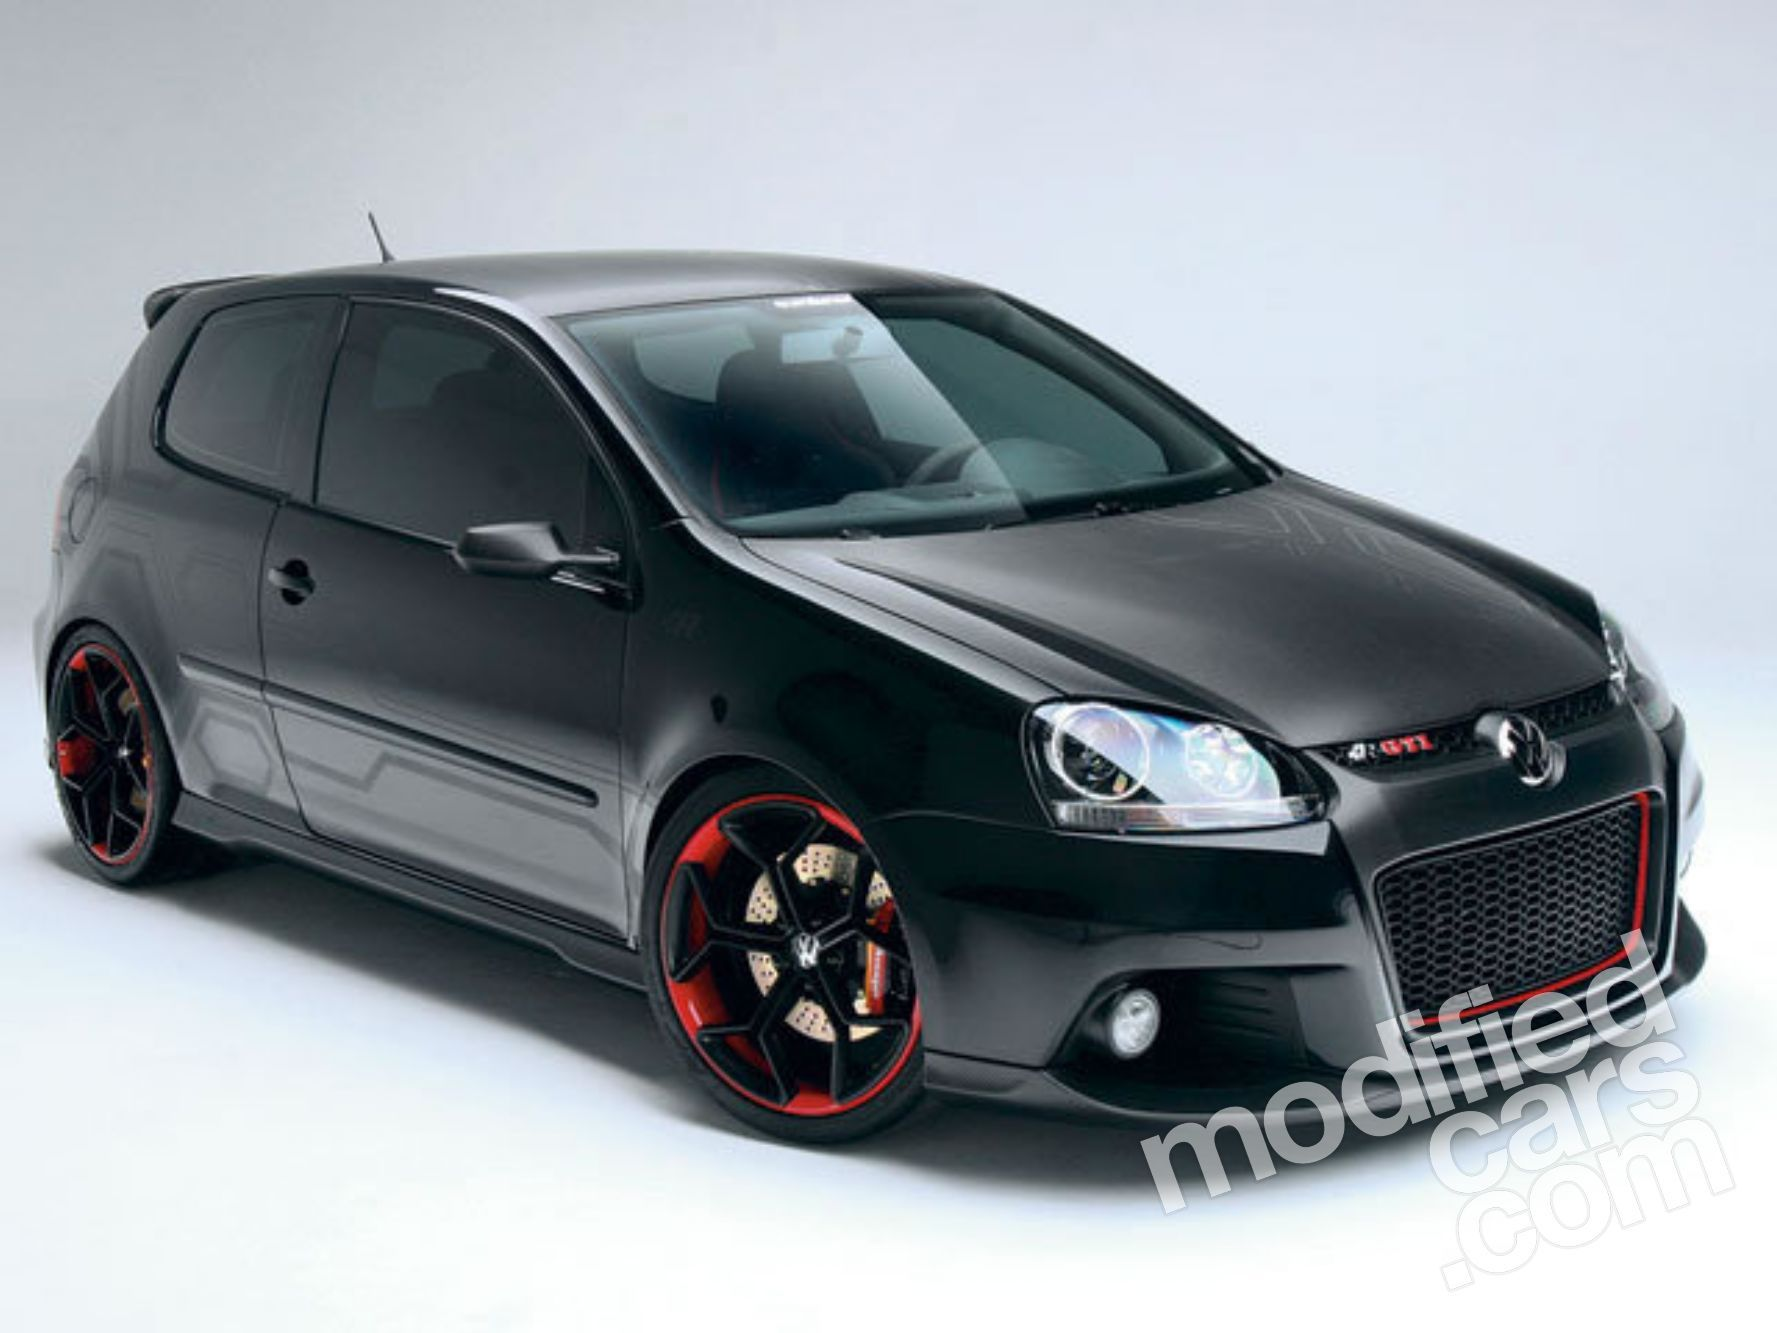 Mitsubishi Eclipse Souped Up >> Volkswagen Golf Gti Modified | www.pixshark.com - Images Galleries With A Bite!